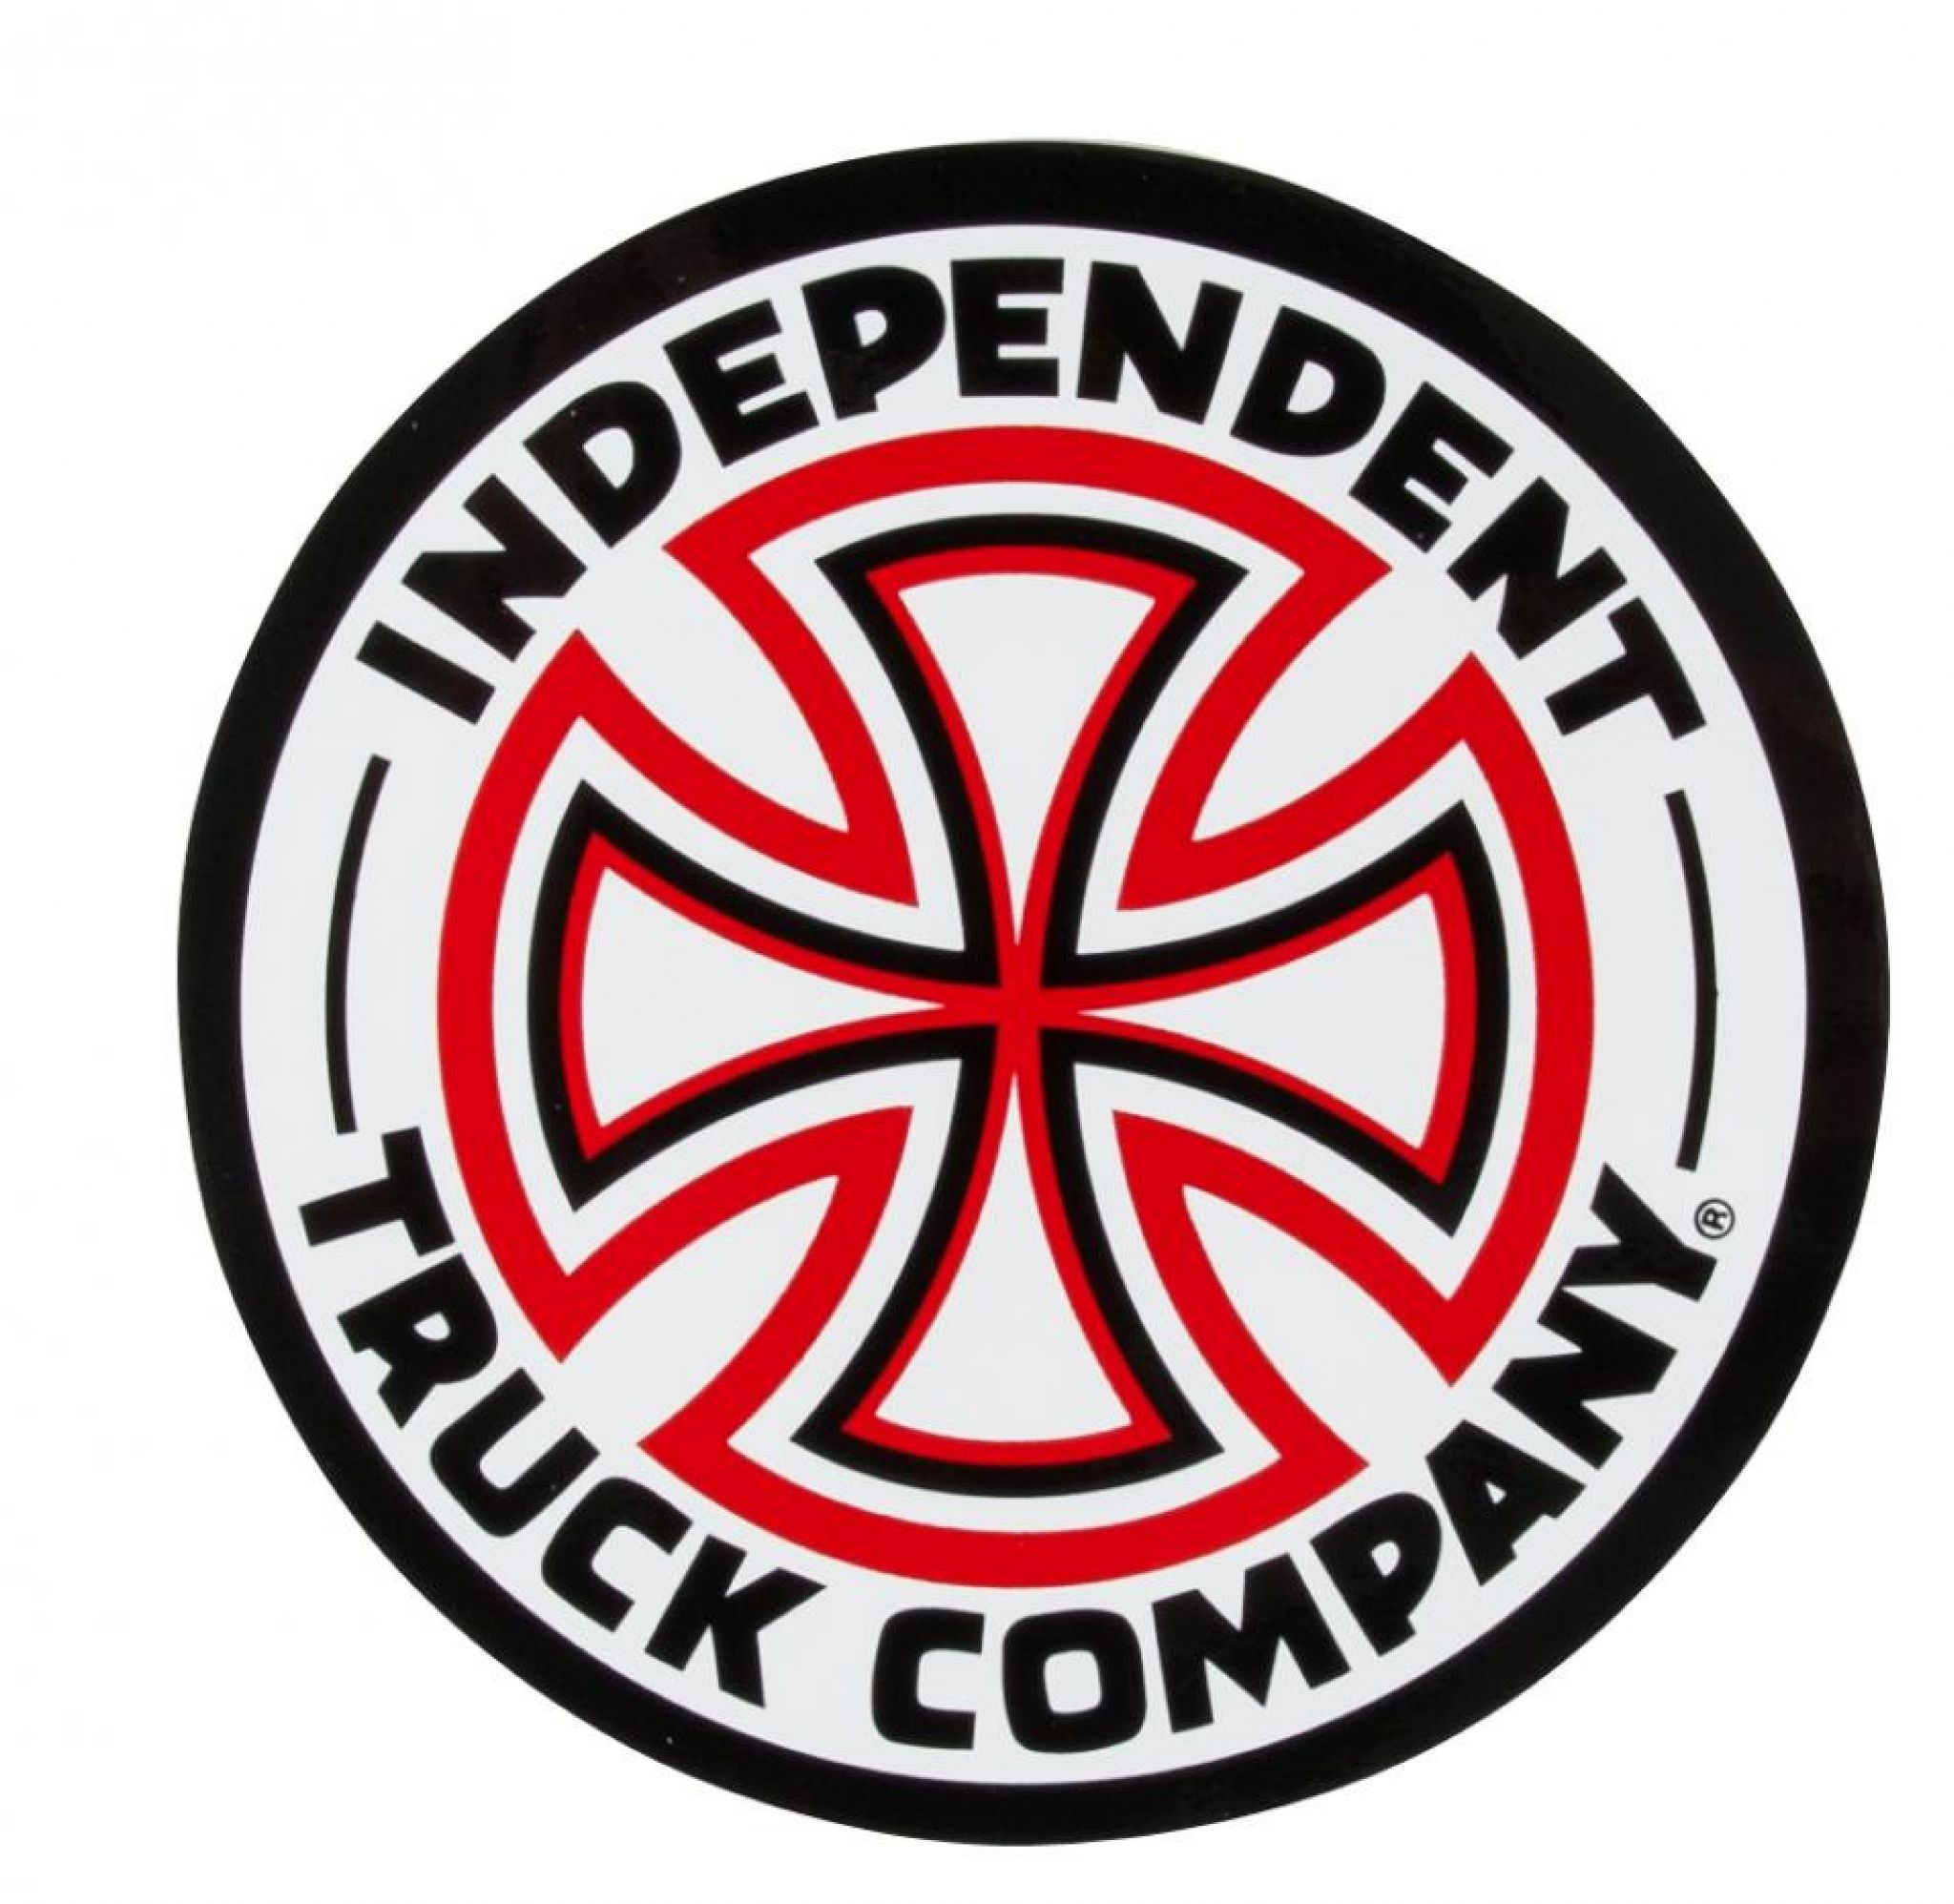 independent cross skateboard sticker 15cm red white large indy trucks rh conflictskates co uk  independent truck company logo